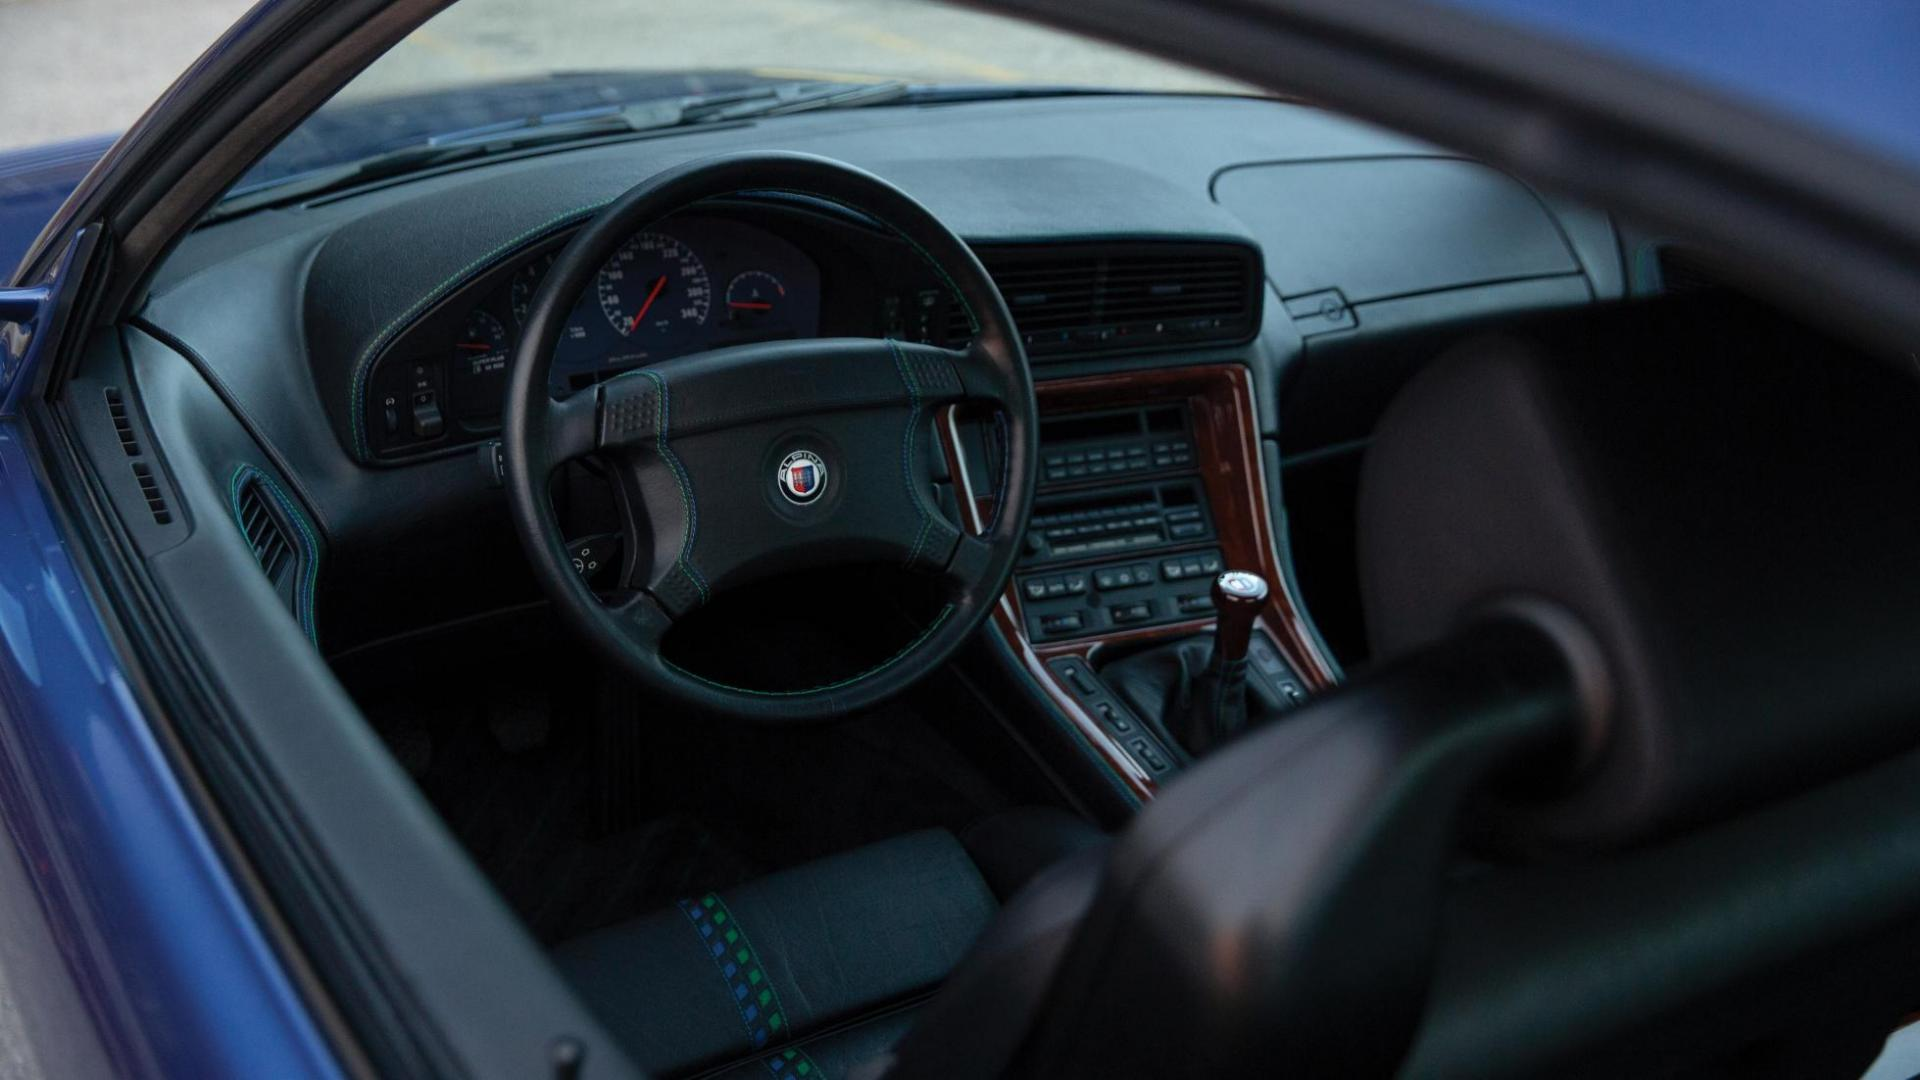 BMW Alpina B12 5.7 Coupe 1993 interieur